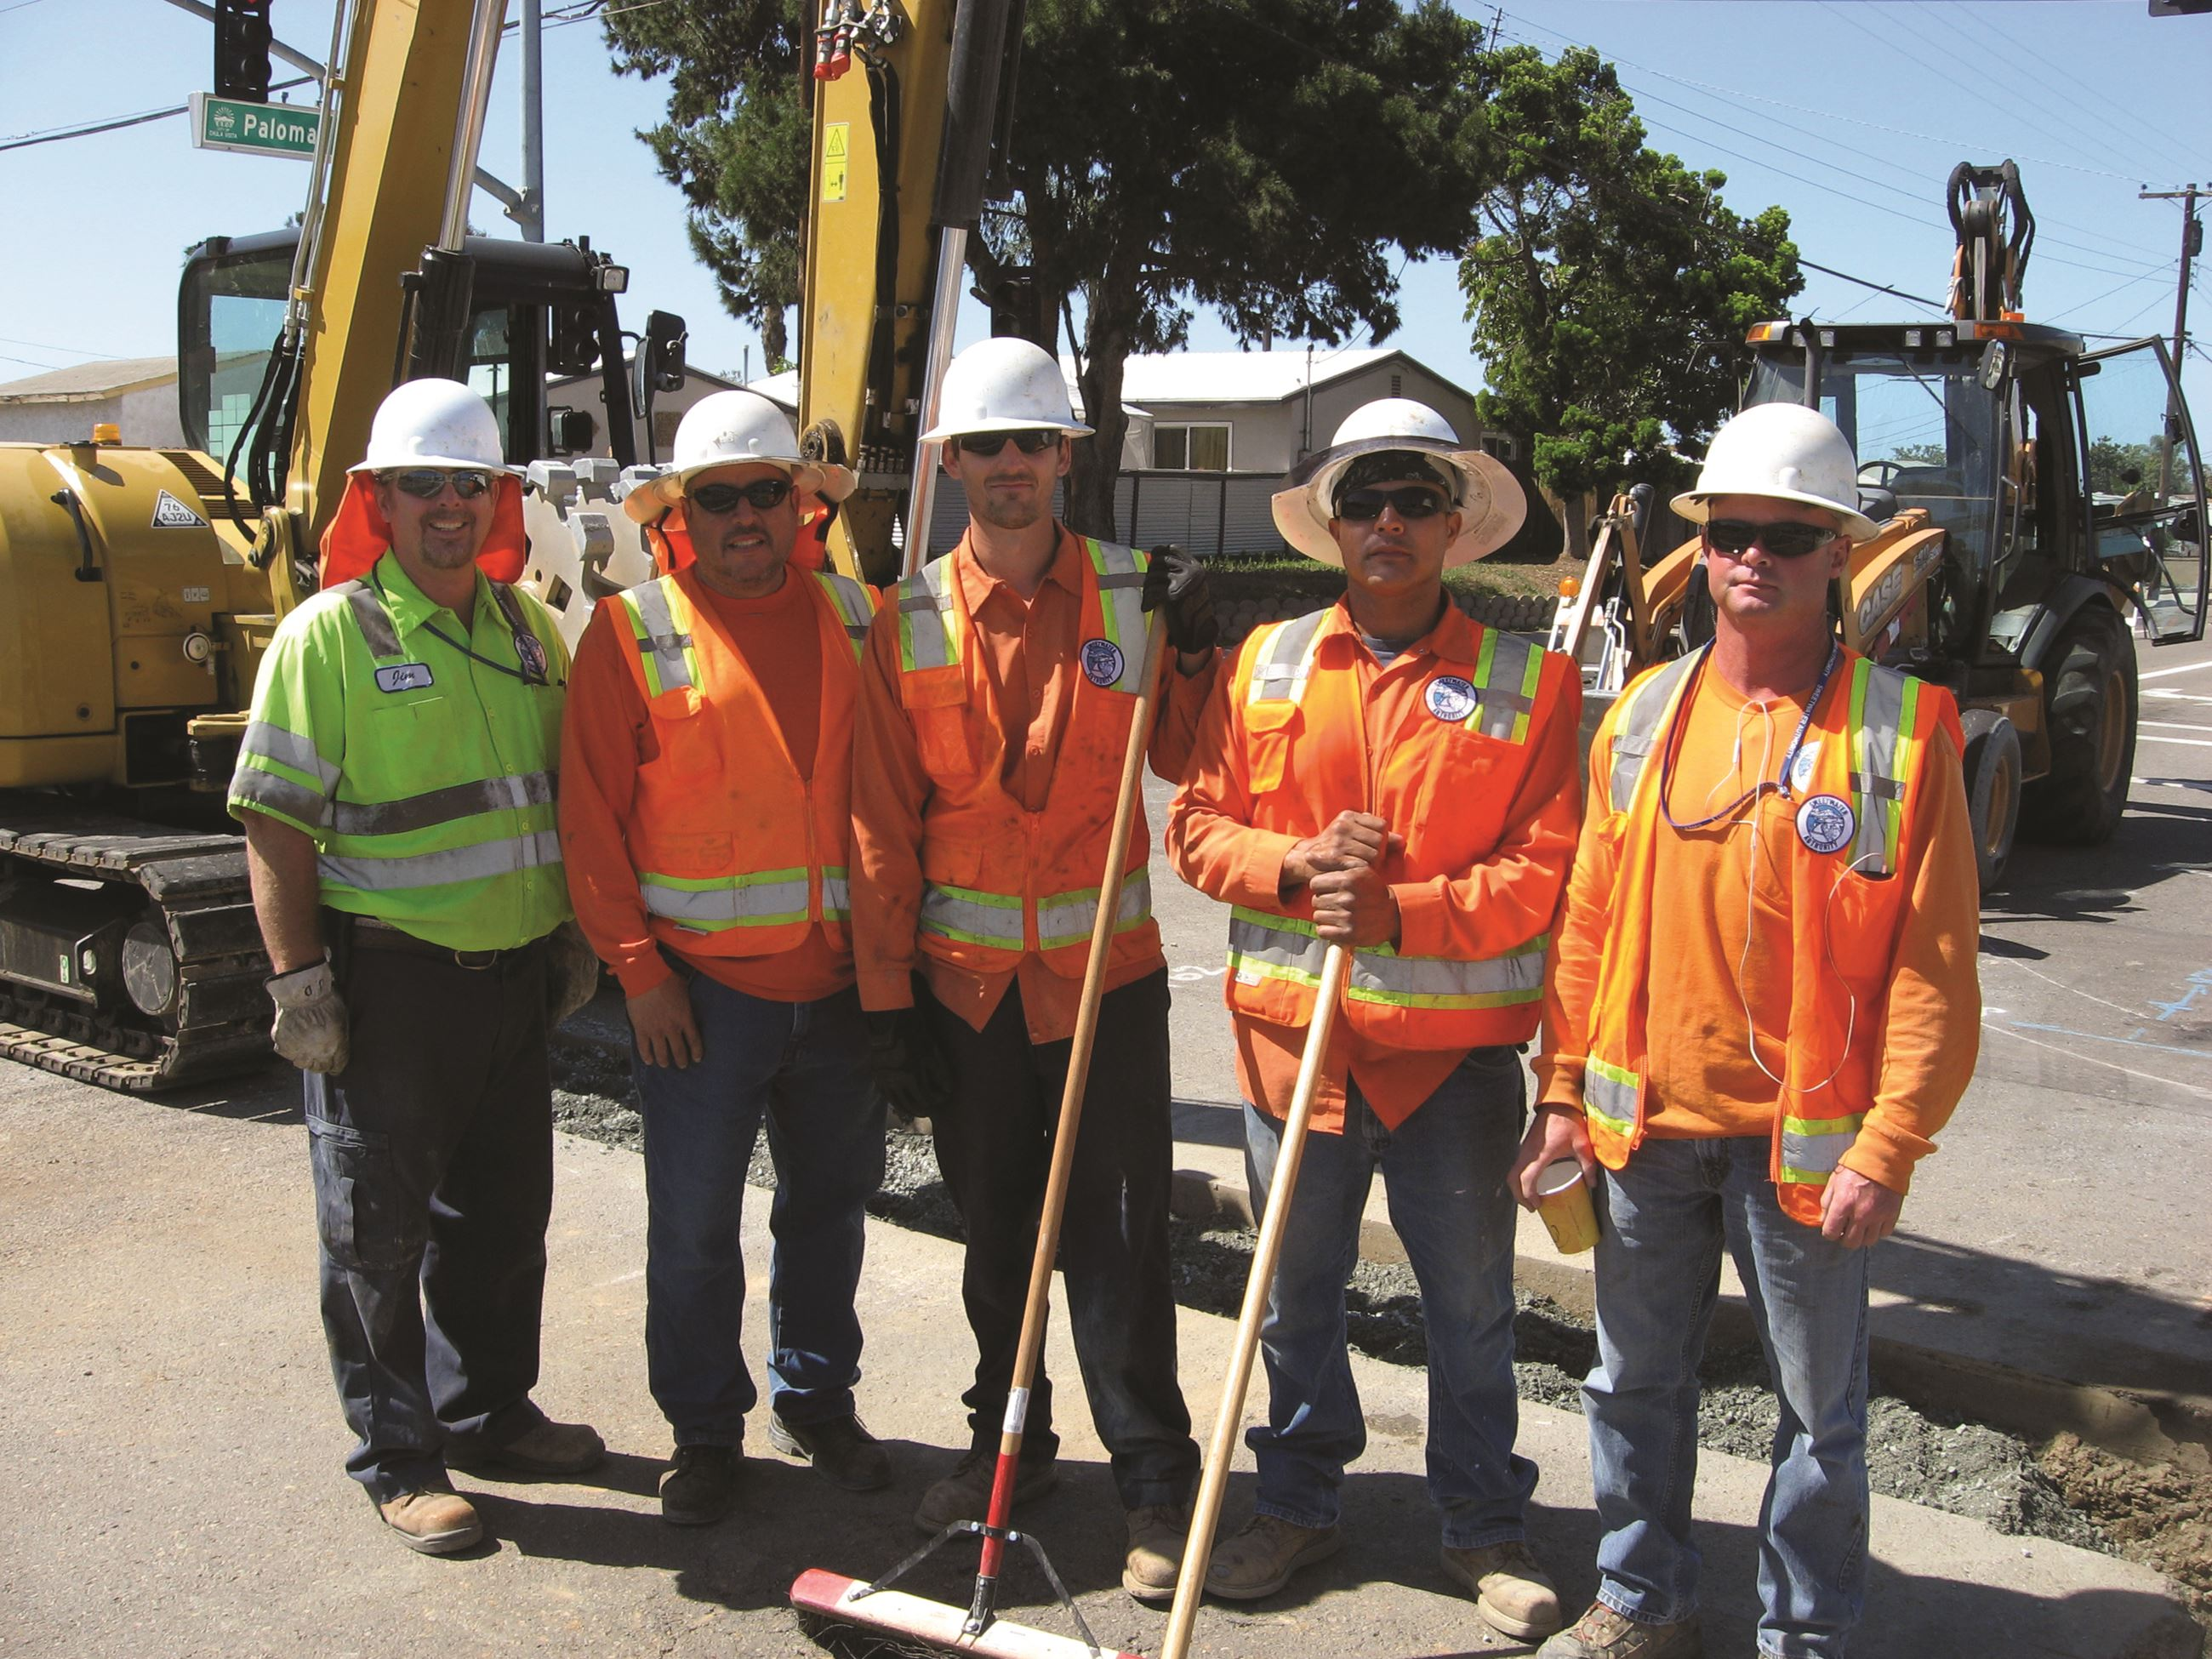 Distribution crews group shot